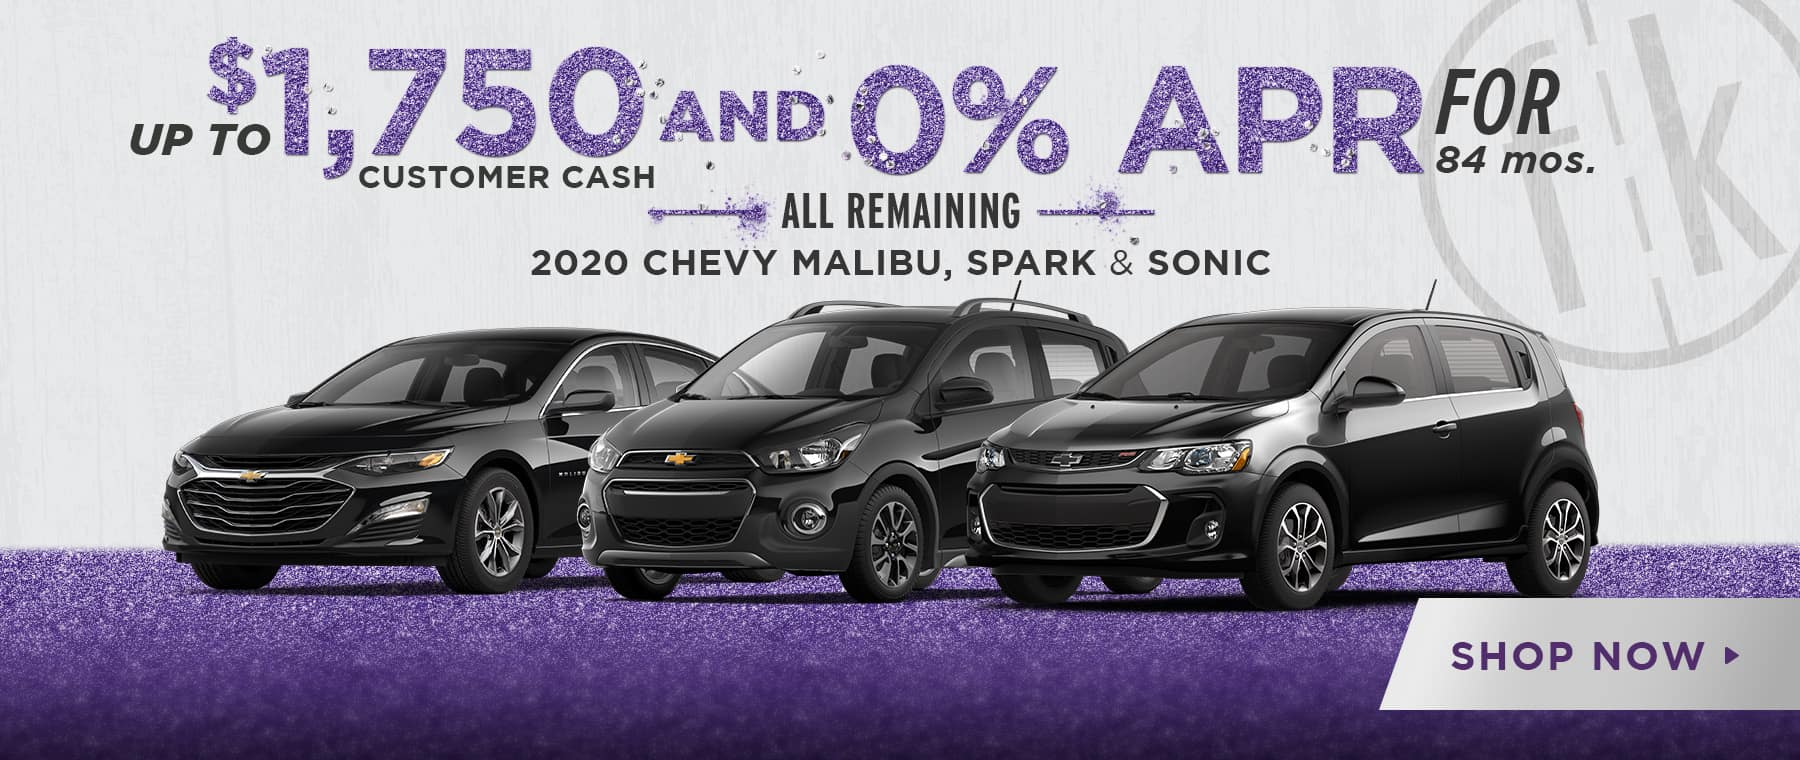 Get Up To $1,750 Customer Cash AND 0% for 84 mos. on ALL REMAINING 2020 Malibu, Spark, & Sonic